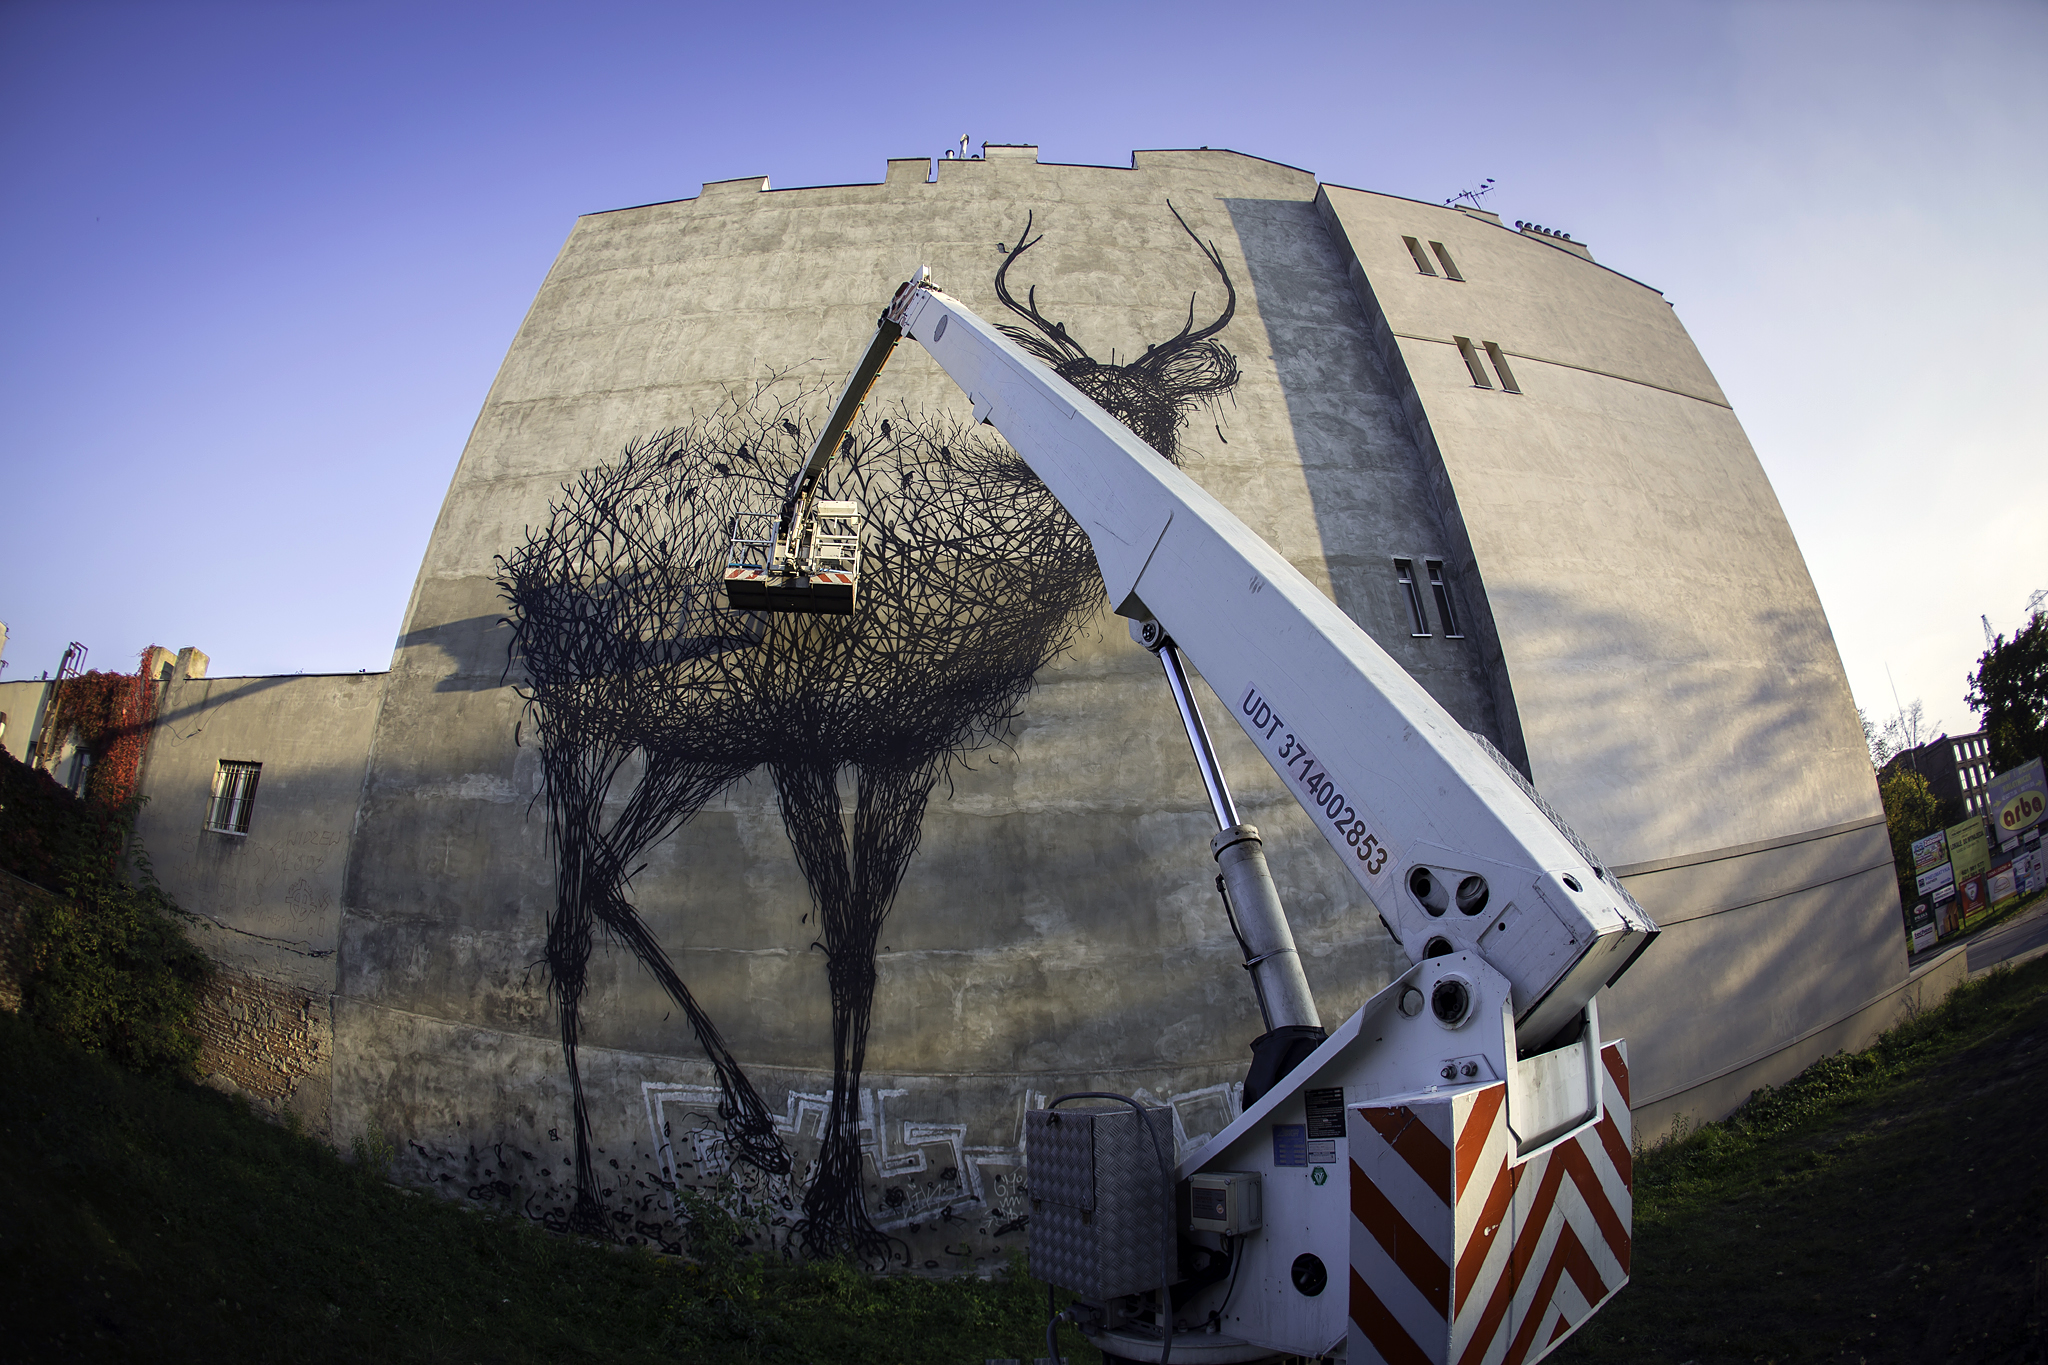 Street Art by DALEAST in Lodz, Poland in for Galeria Urban Forms project 6